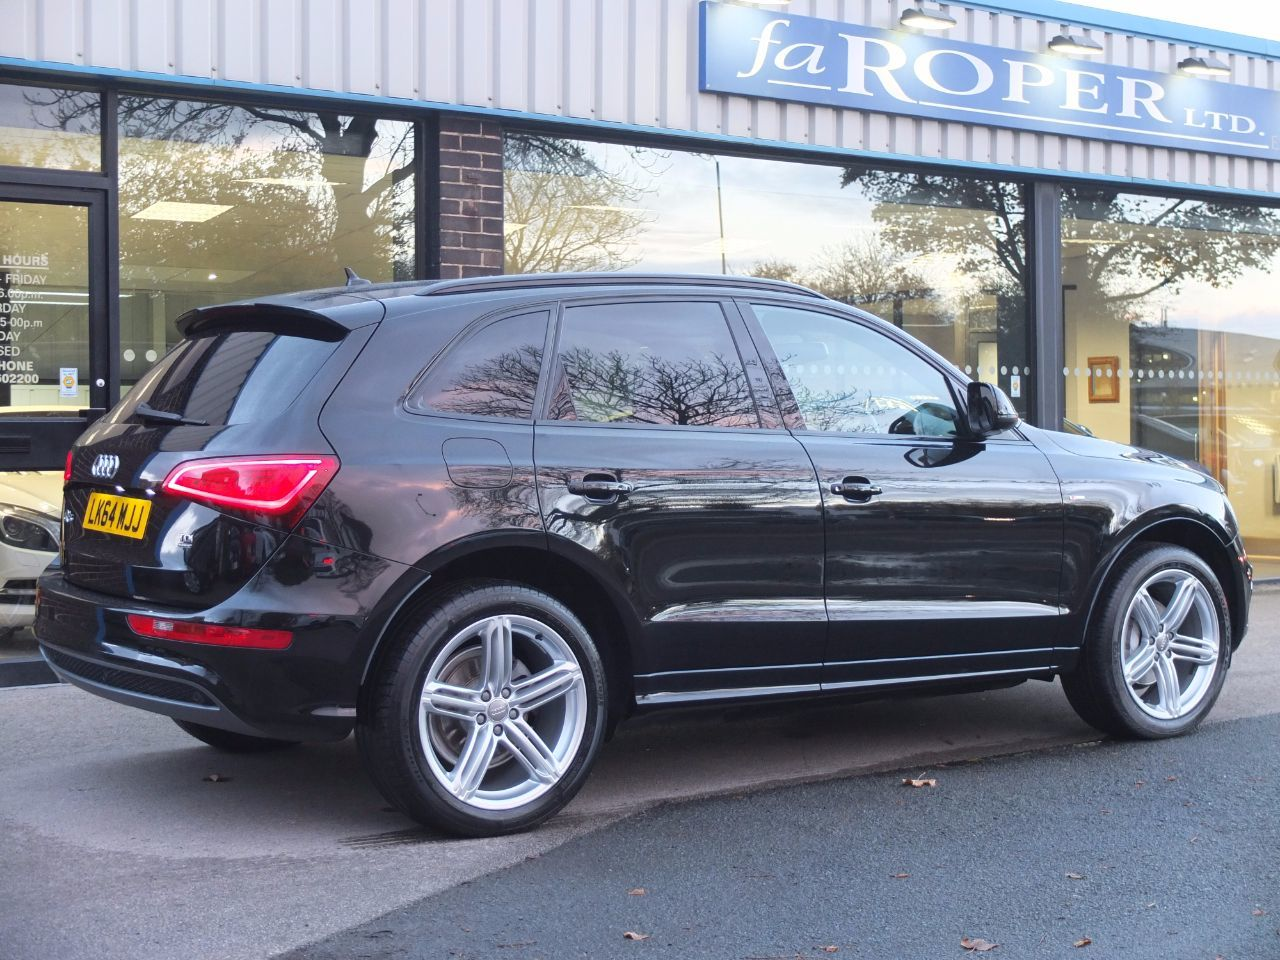 used audi q5 2 0 tdi quattro s line plus 177ps s tronic for sale in bradford west yorkshire. Black Bedroom Furniture Sets. Home Design Ideas